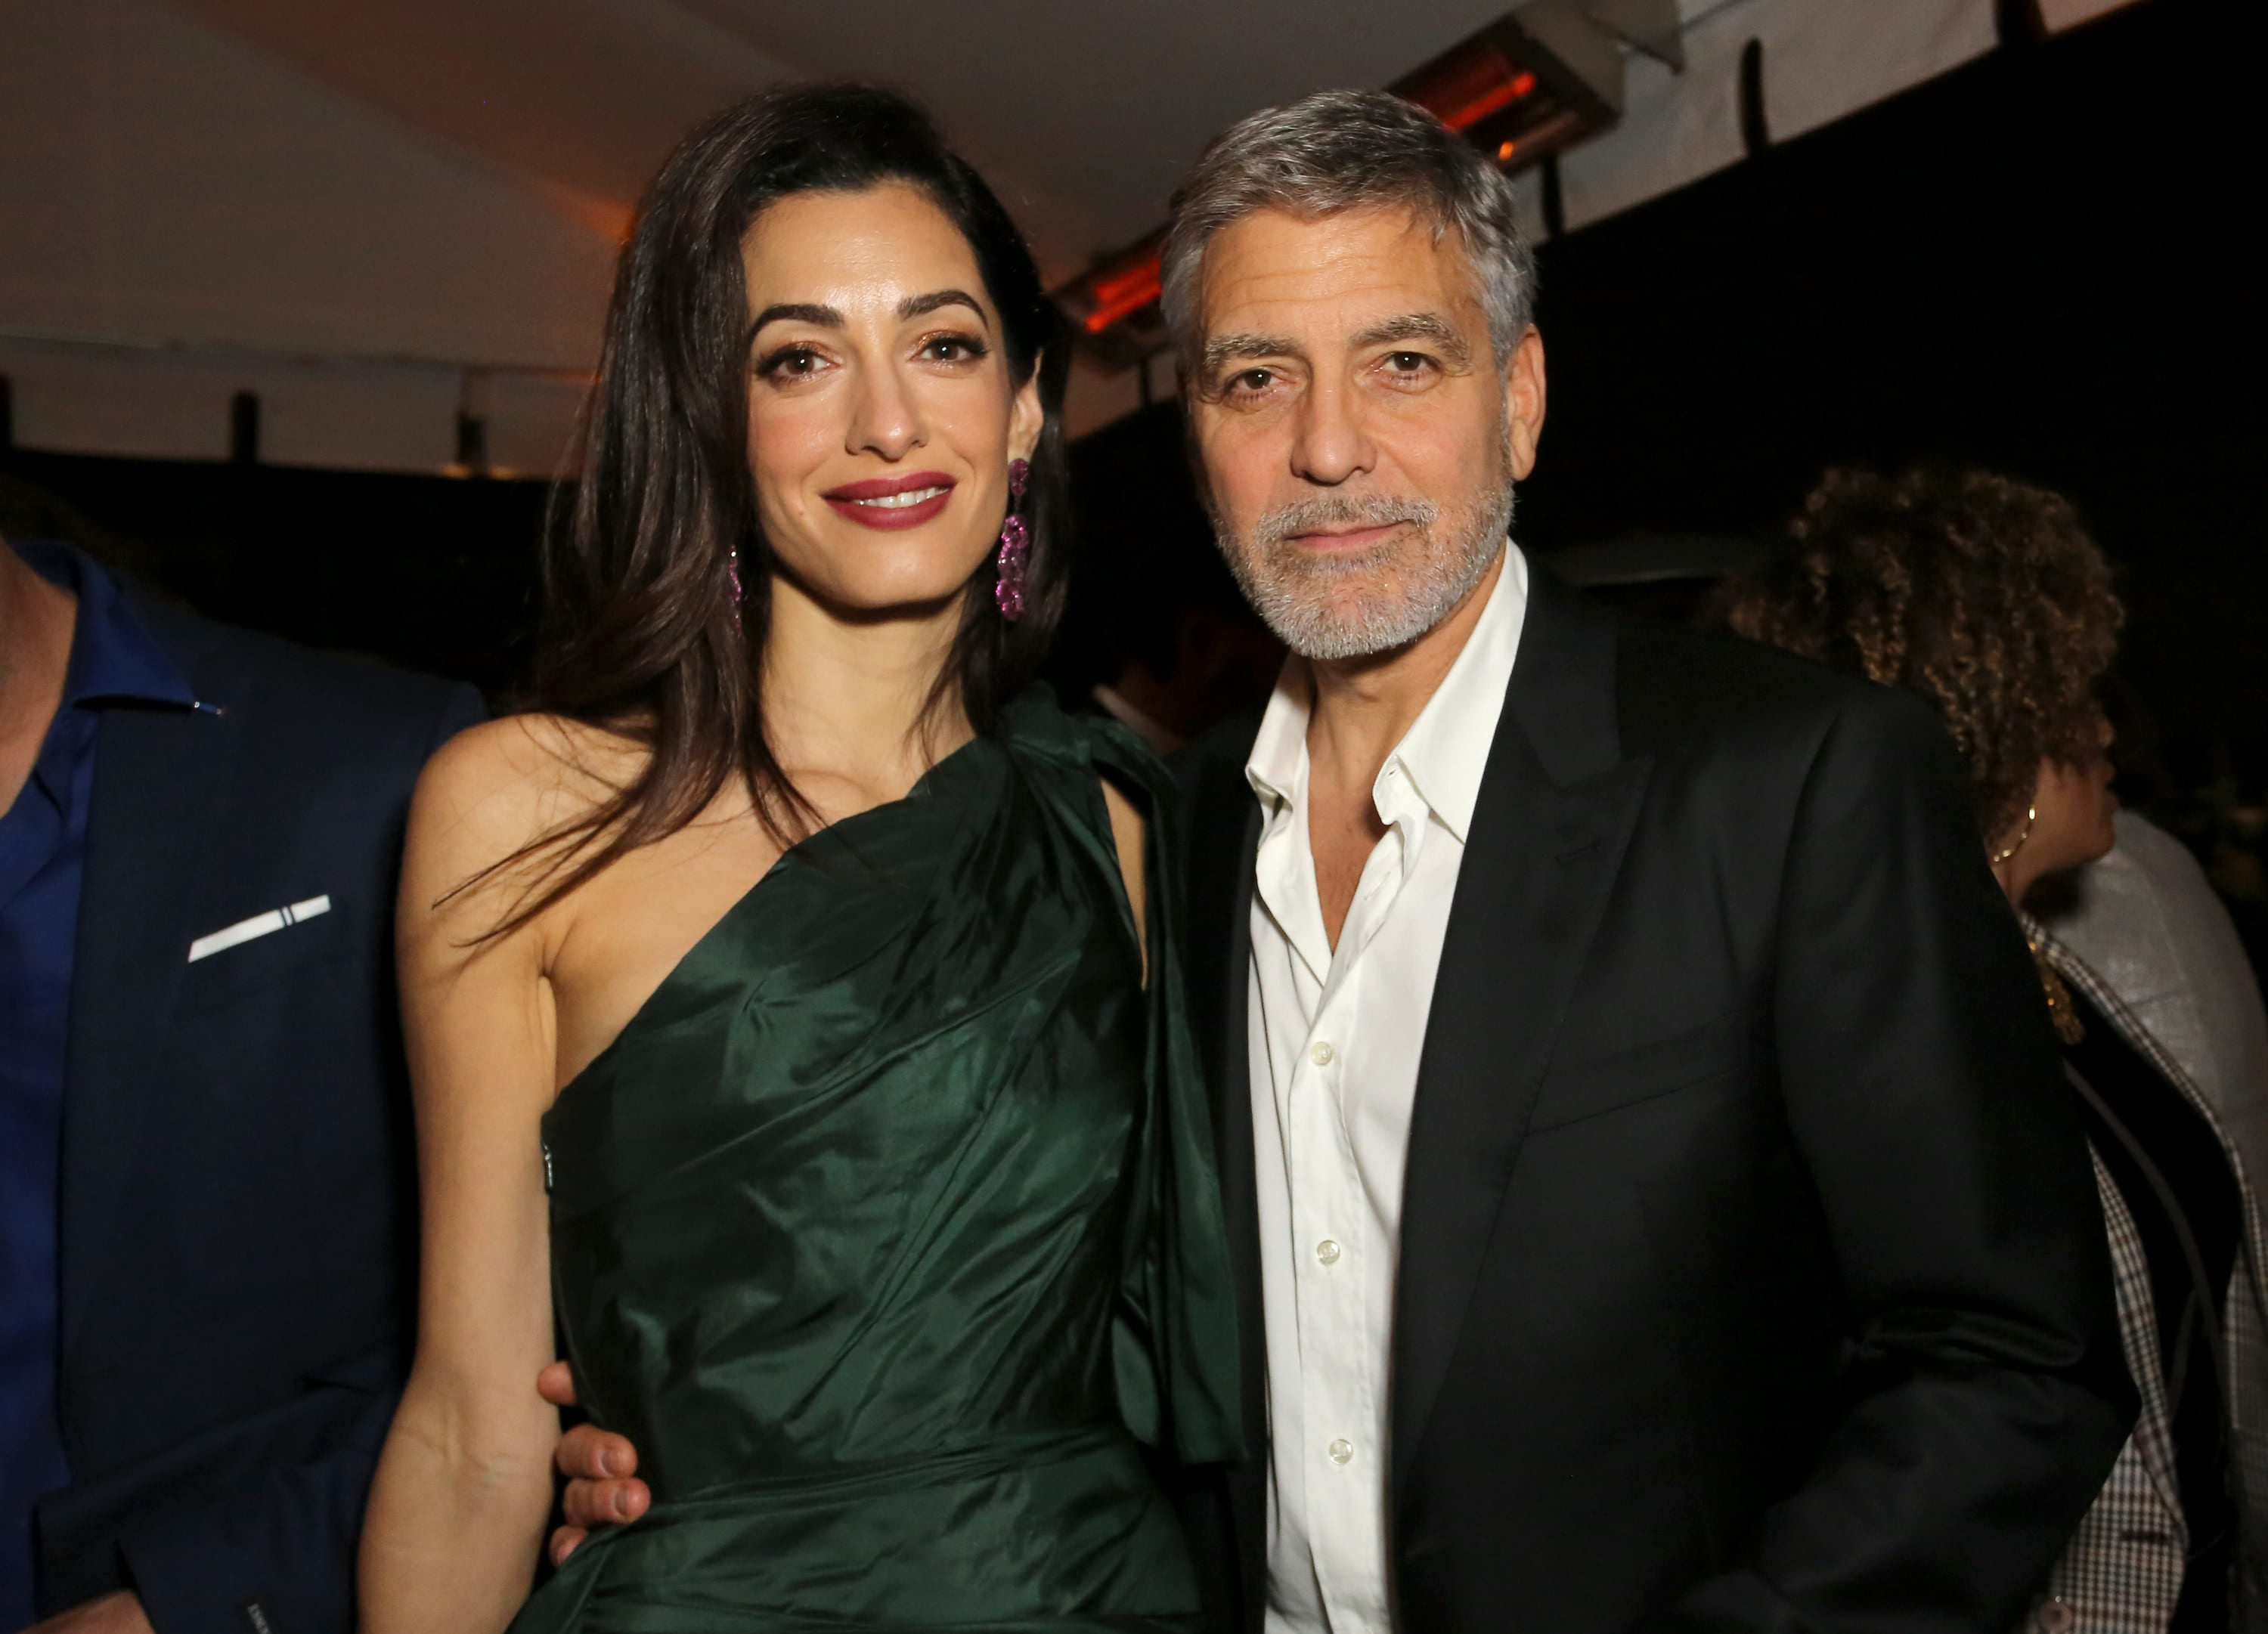 George and Amal pose together